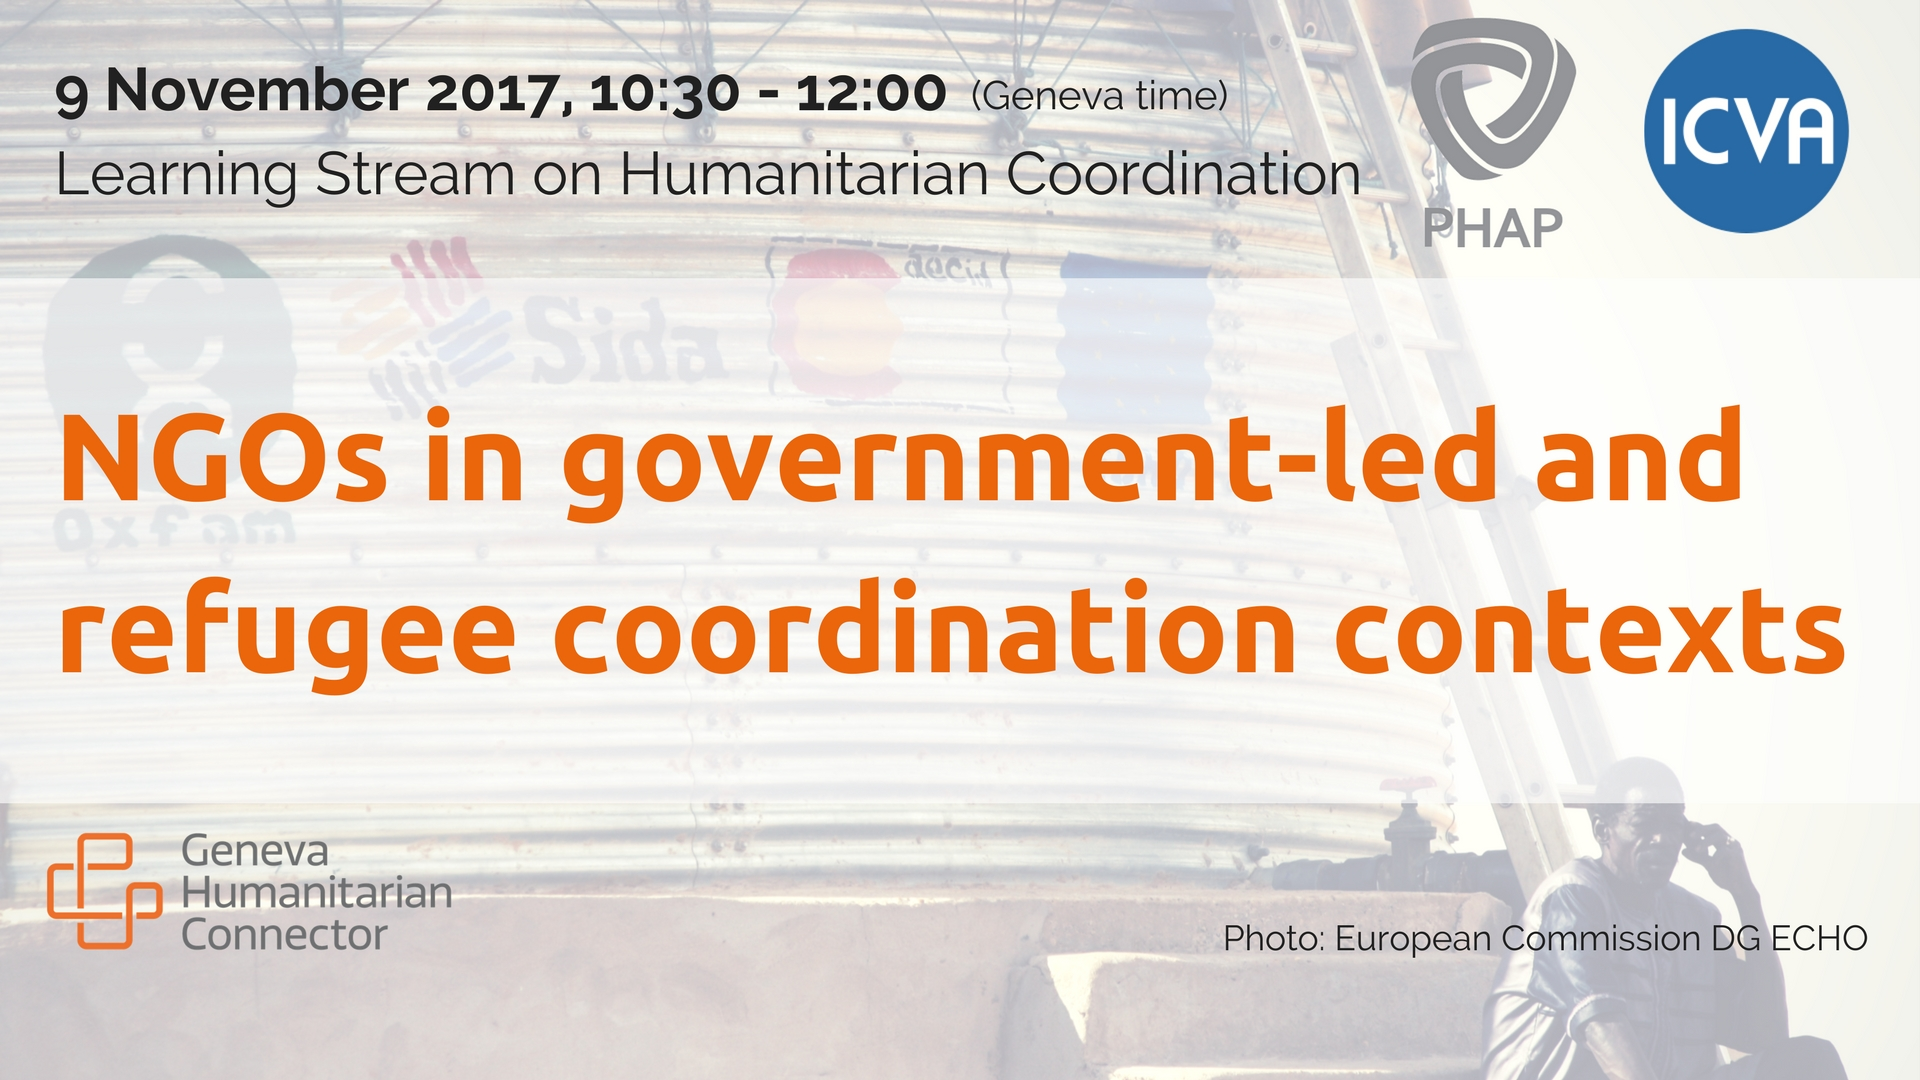 NGOs in government-led and refugee coordination contexts